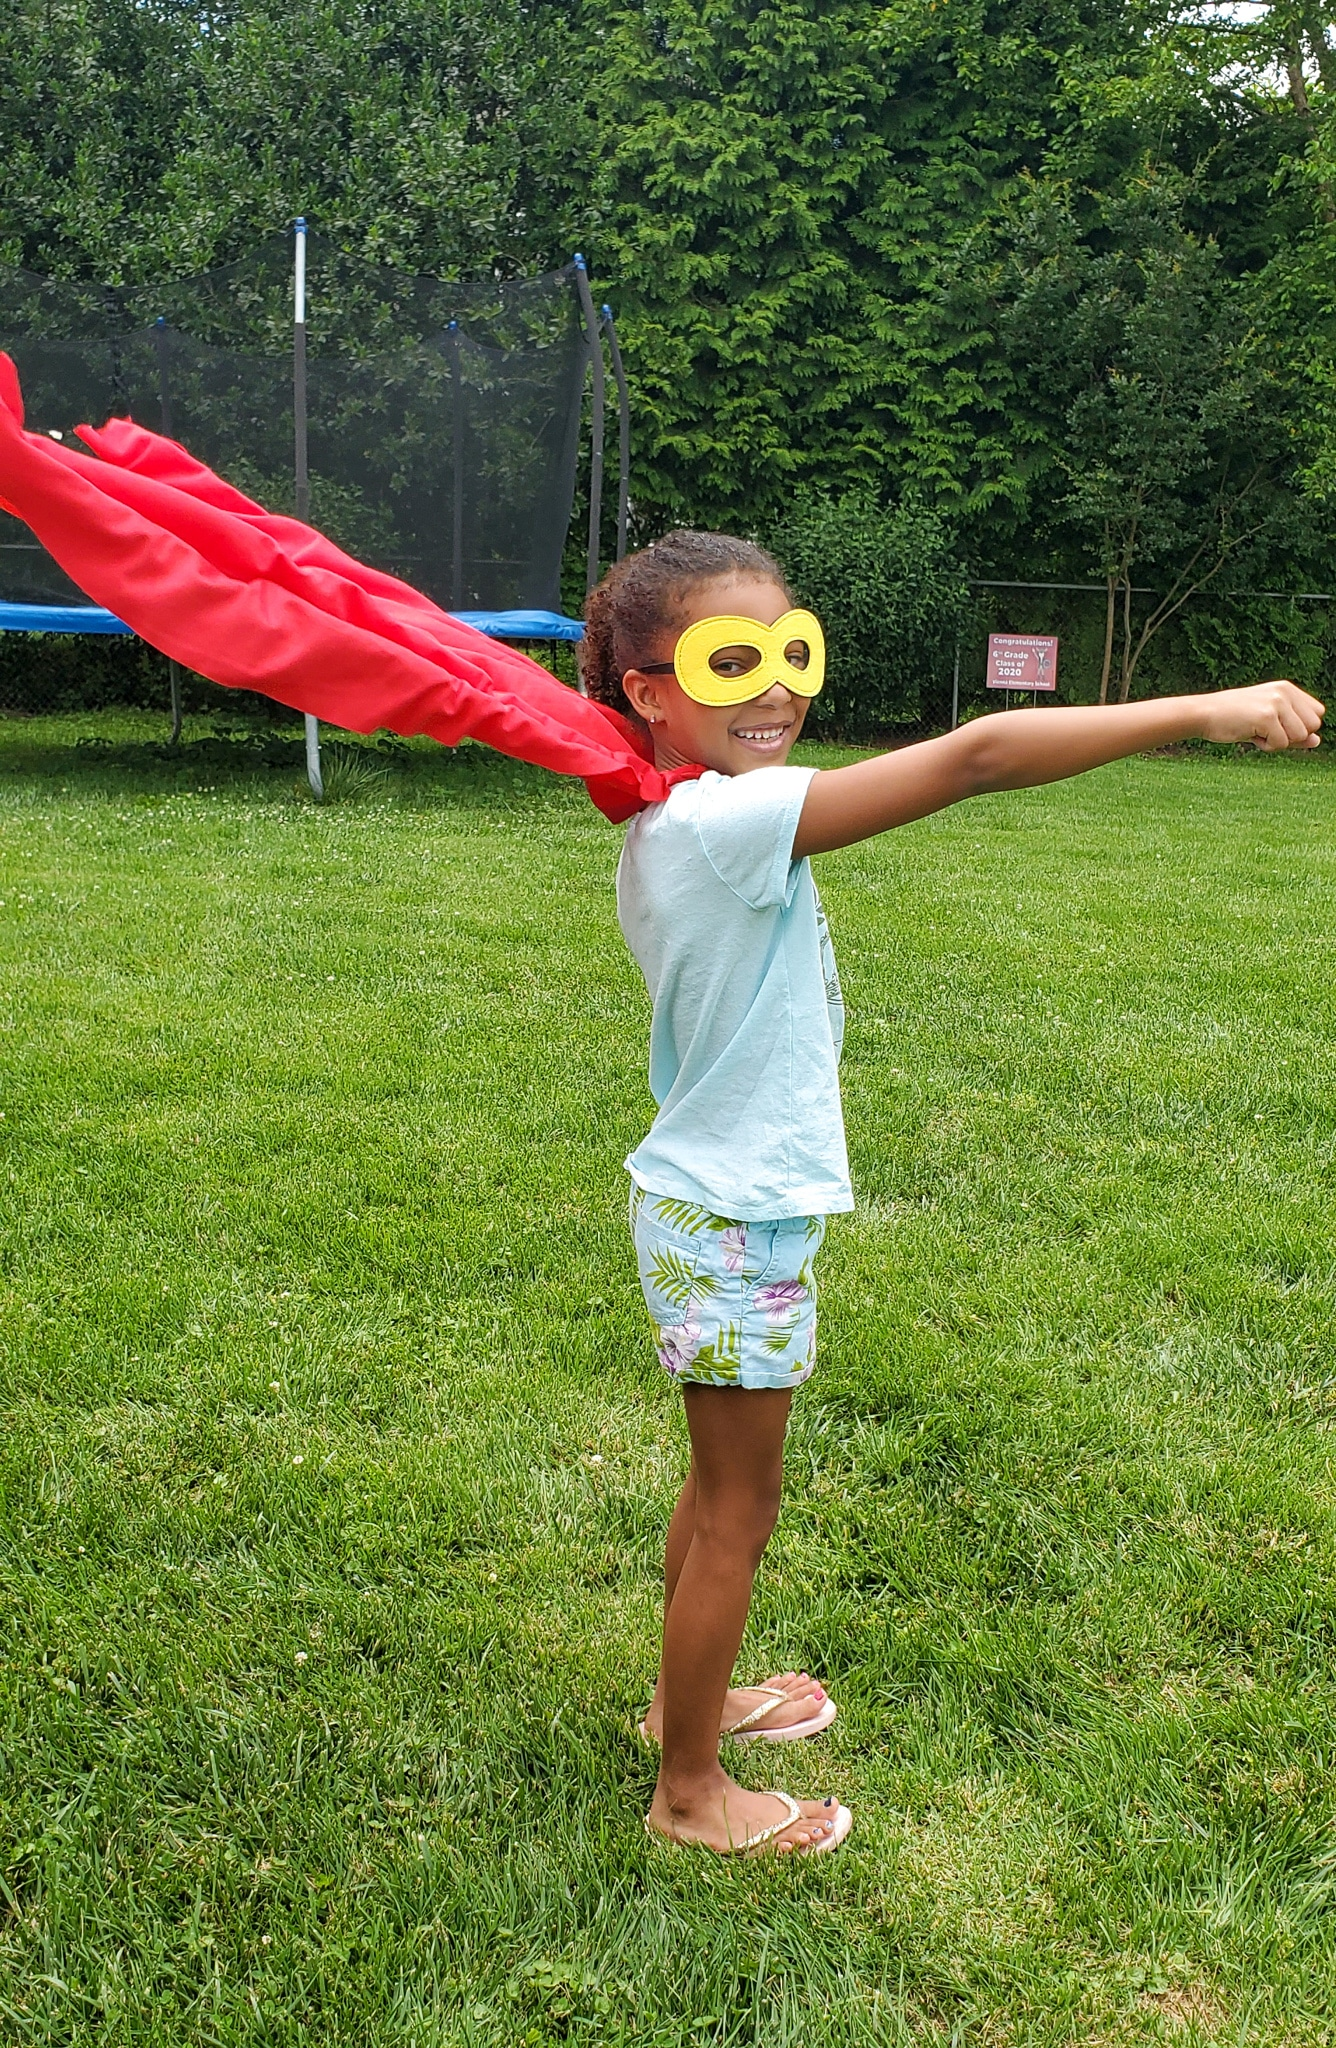 Virtual Super Hero Training Fly. Join us as we adventure through 8 weeks of Virtual Camp Warner Bros. Each week will feature a new fun family friendly activity and a Warner Bros. Show or Movie. This week featured a Virtual Super Hero Training.